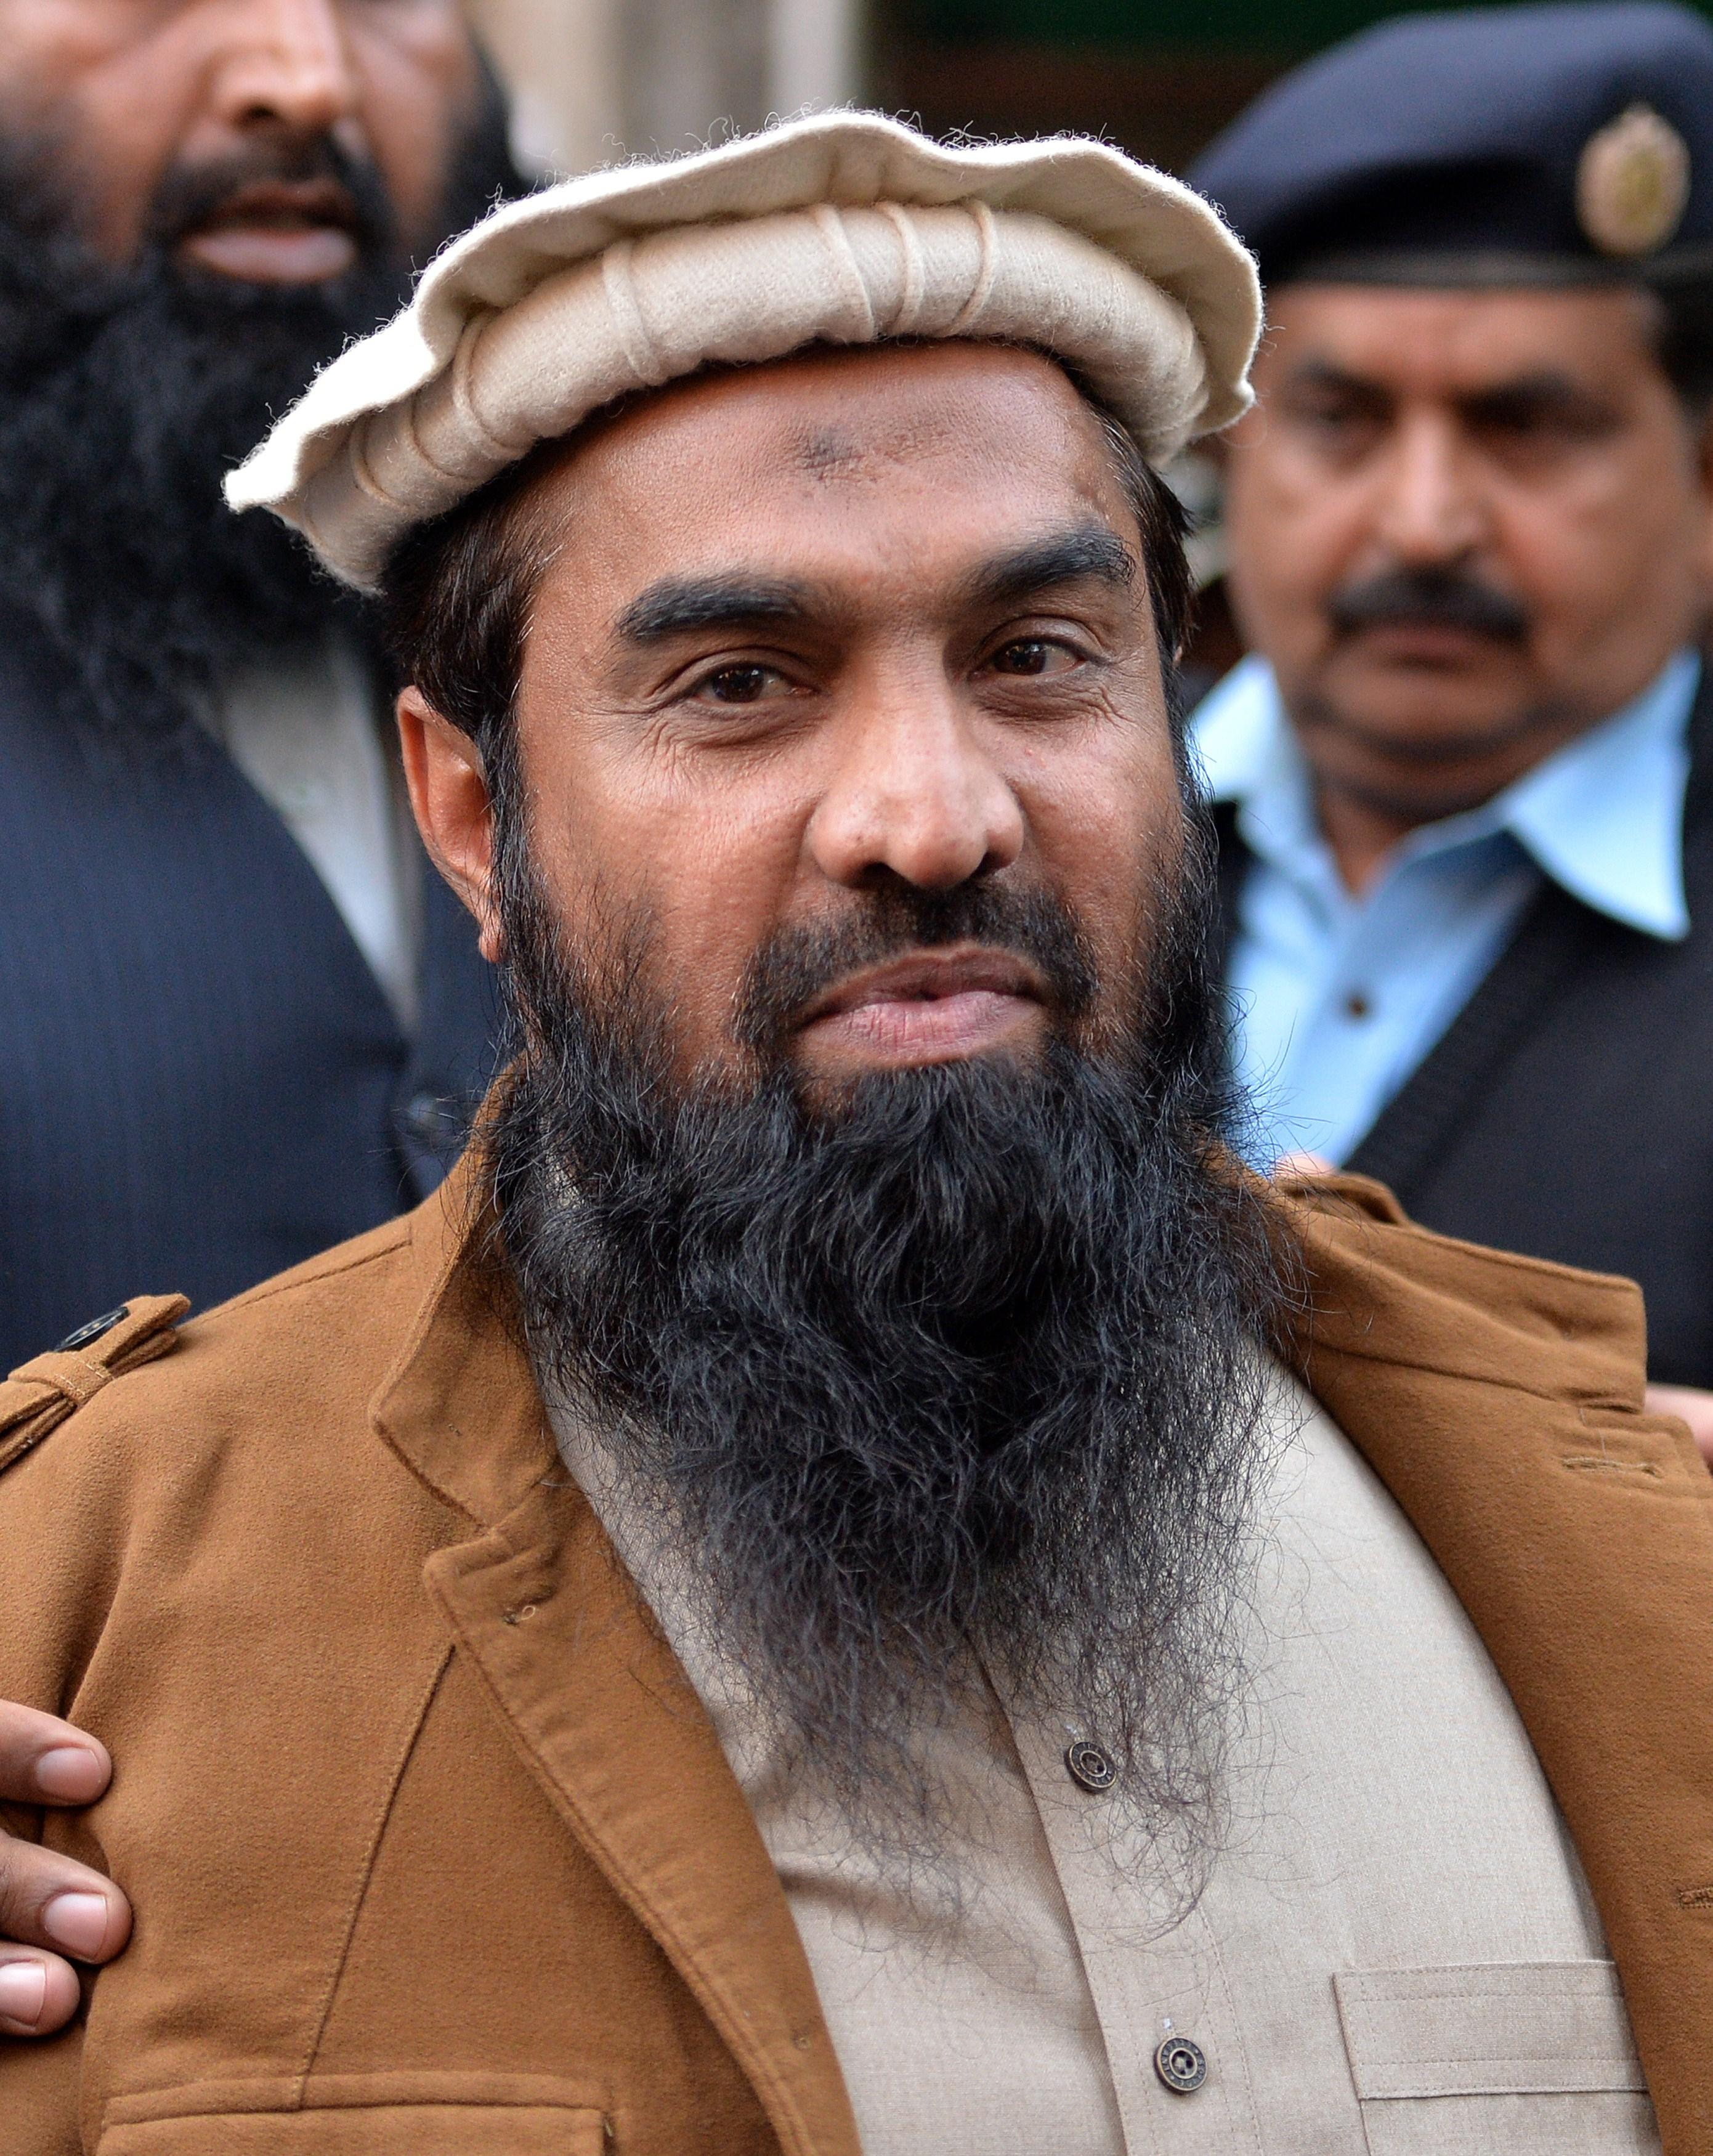 Pakistani security personnel escort Zaki-ur-Rehman Lakhvi, alleged mastermind of the 2008 Mumbai attacks, as he leaves the court after a hearing in Islamabad on Jan. 1, 2015